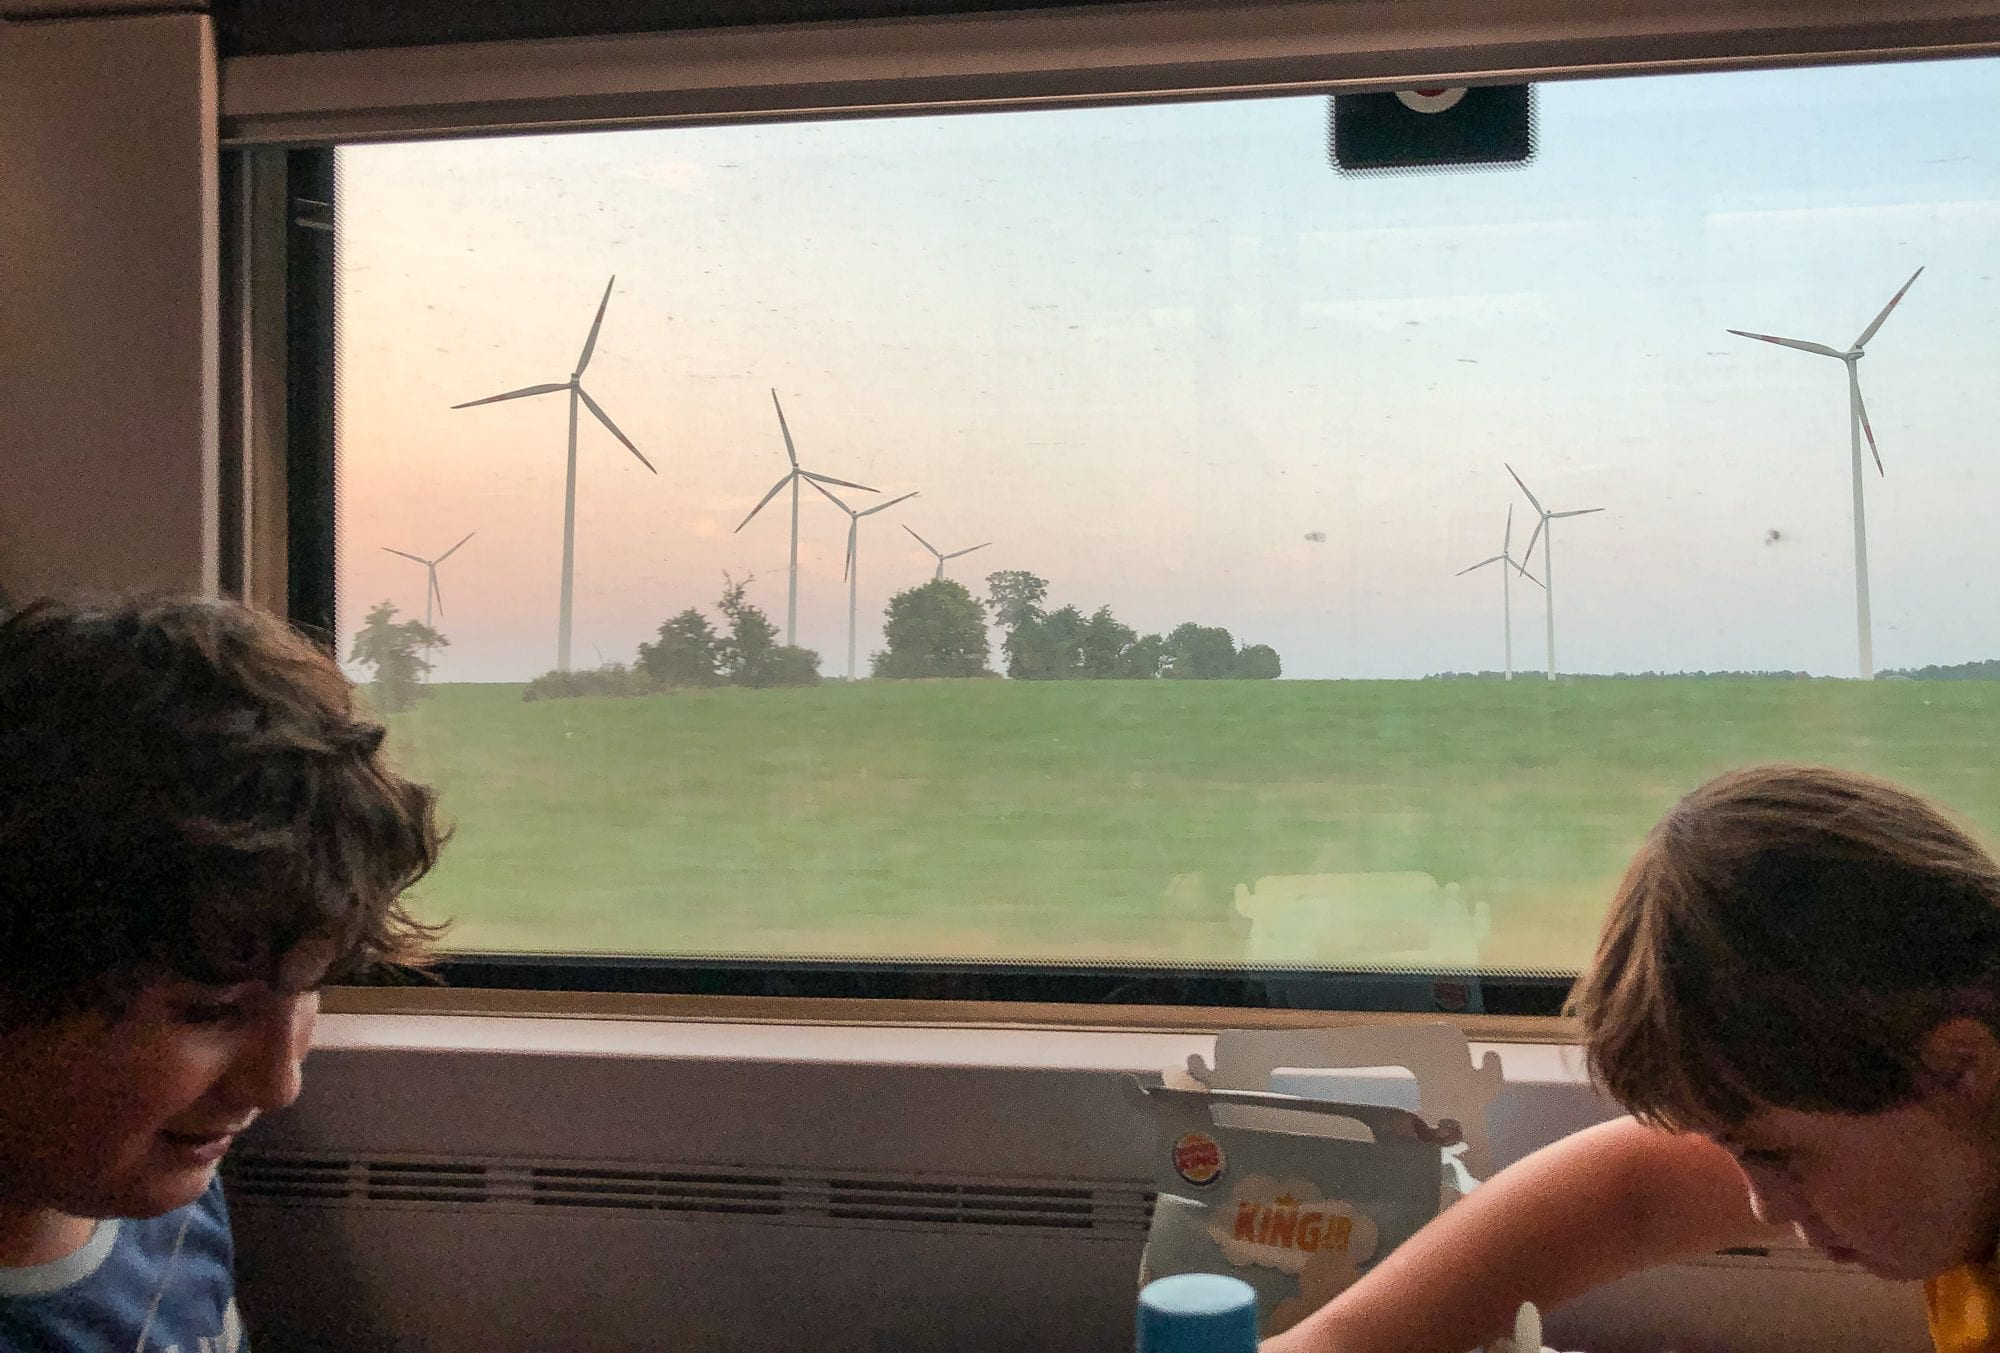 on the train in europe, image of two children by the window with windmills outside